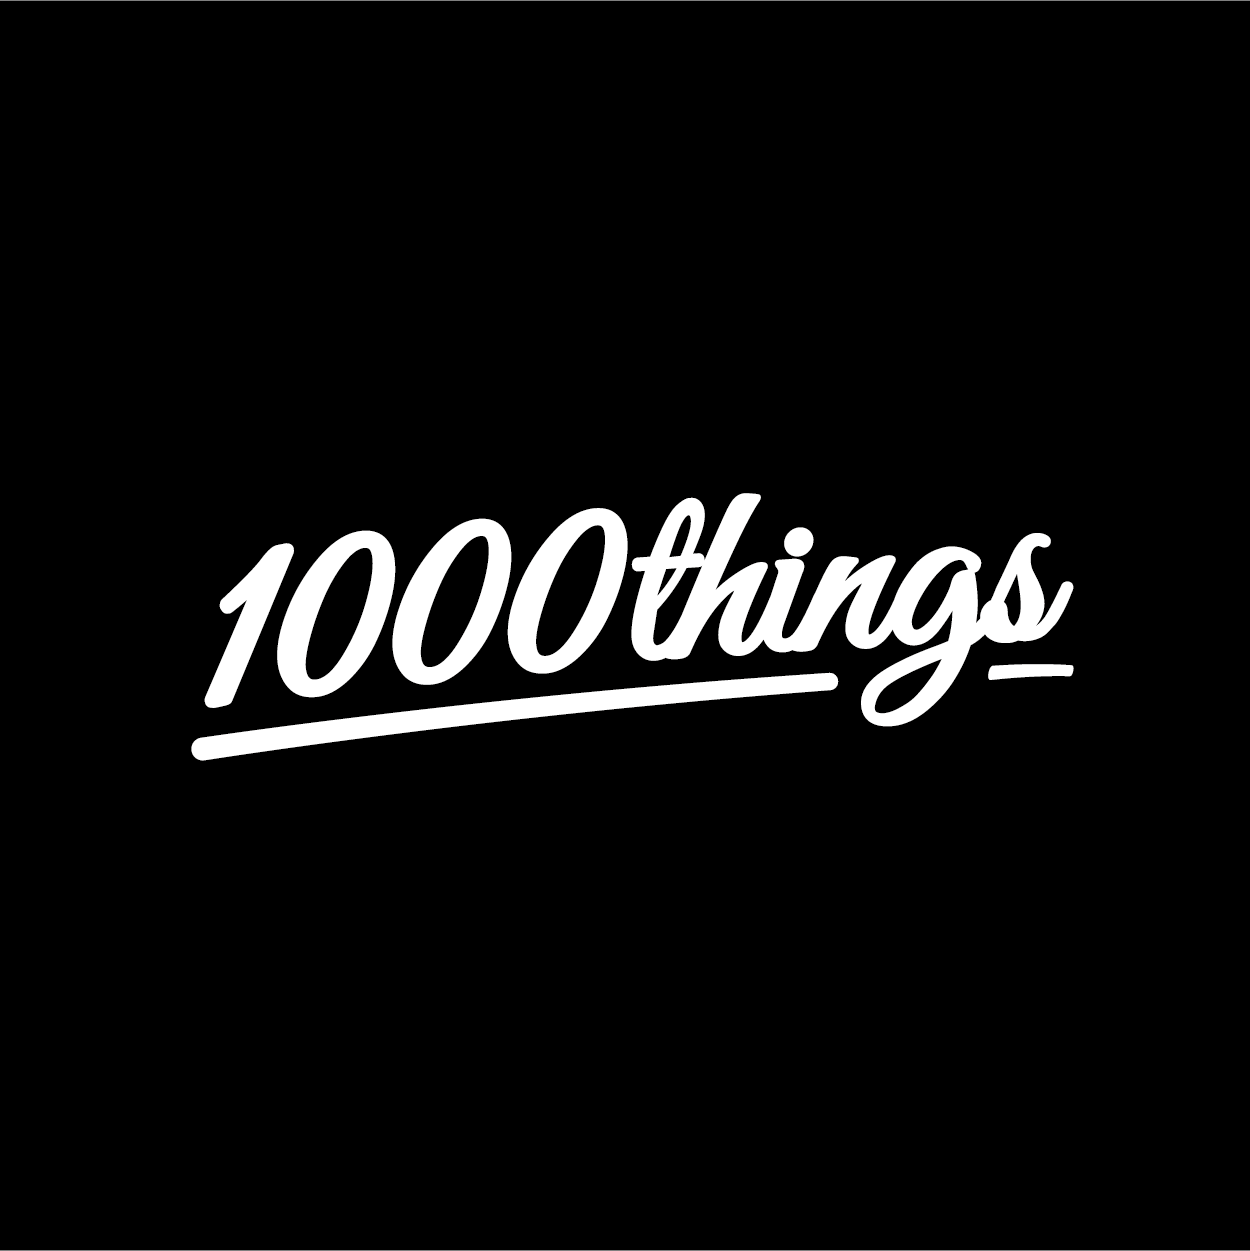 1000things GmbH